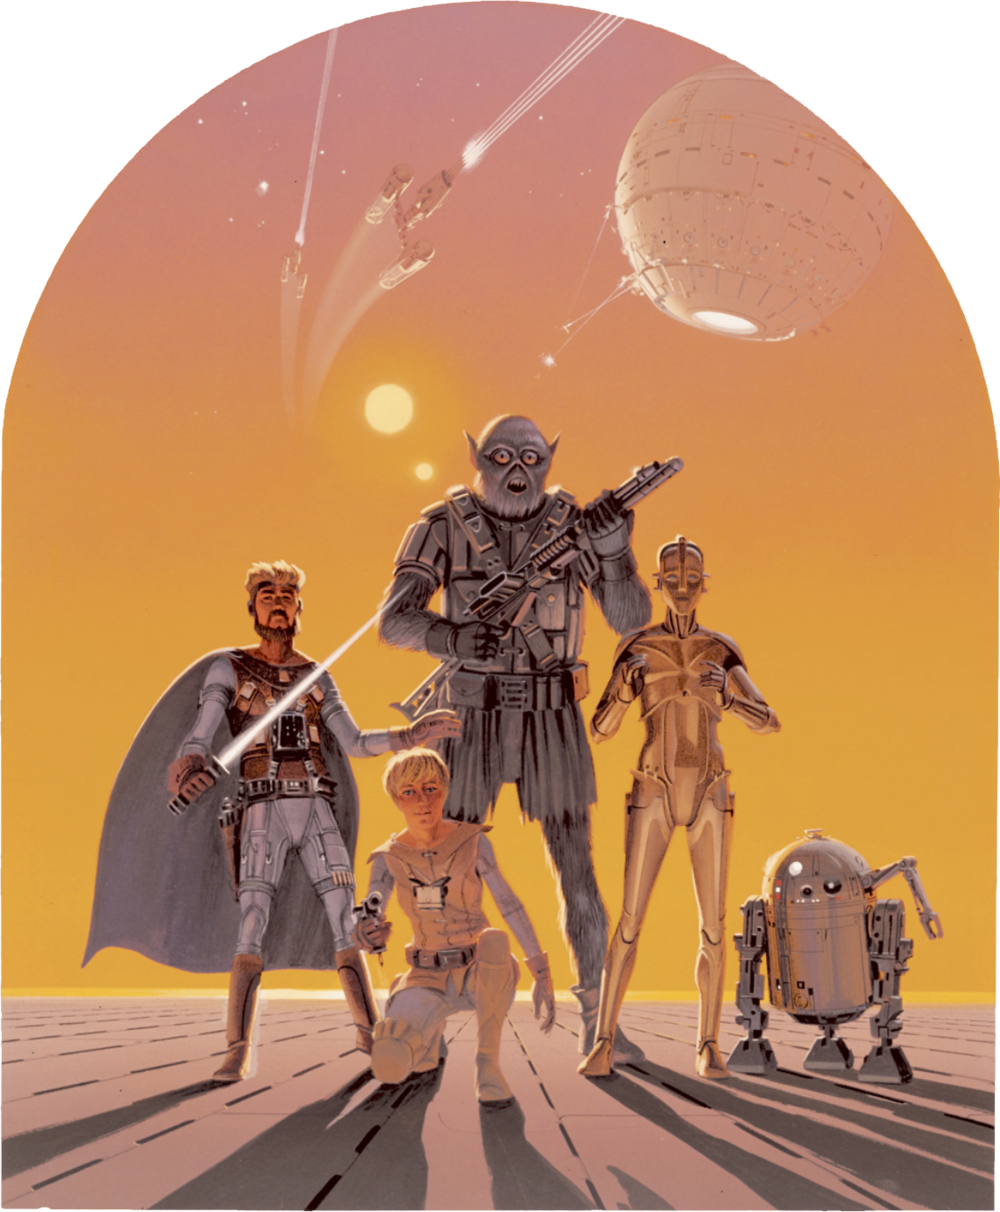 Promotional poster idea by McQuarrie Source: The Making of Star Wars, page 41.